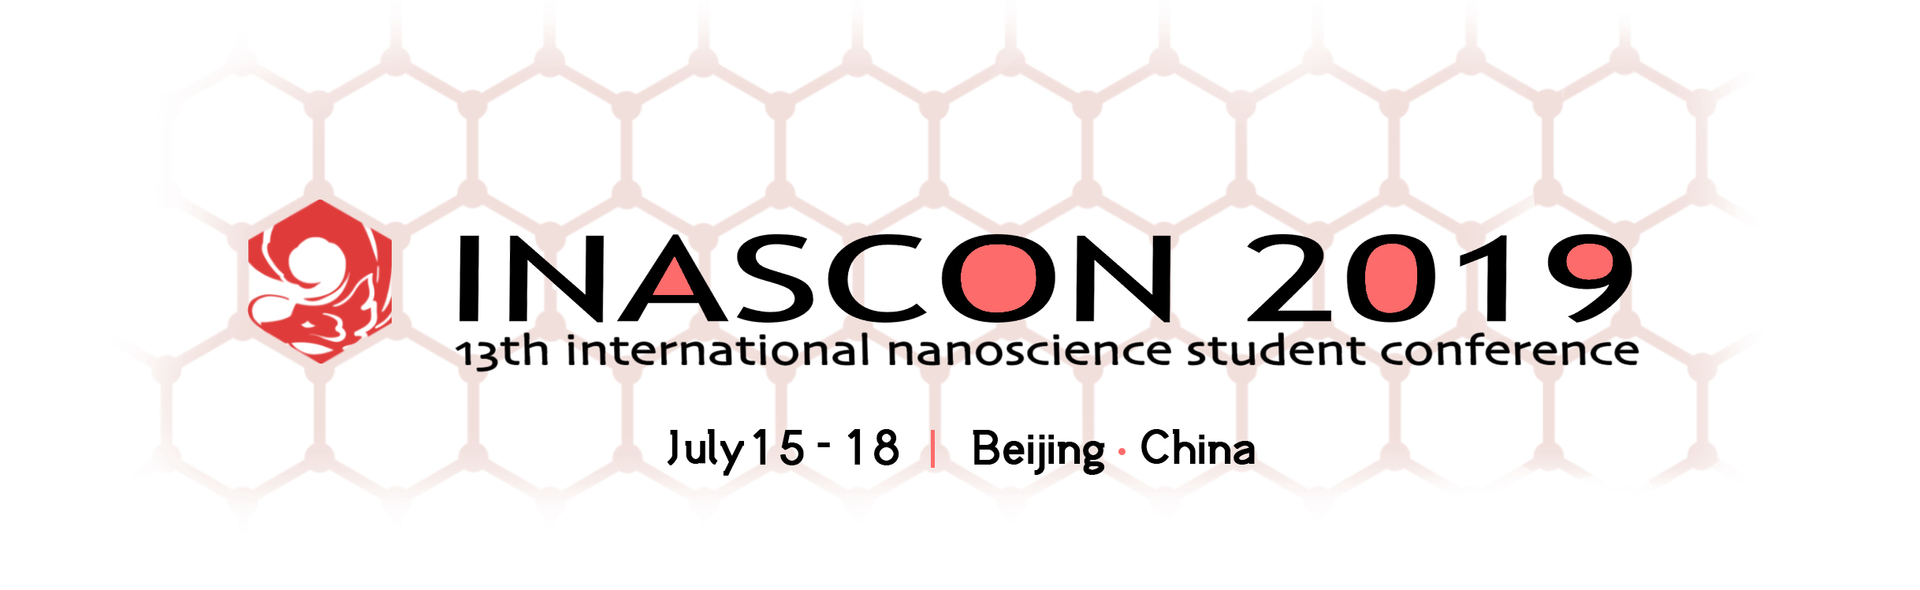 13th International Nanoscience Student Conference